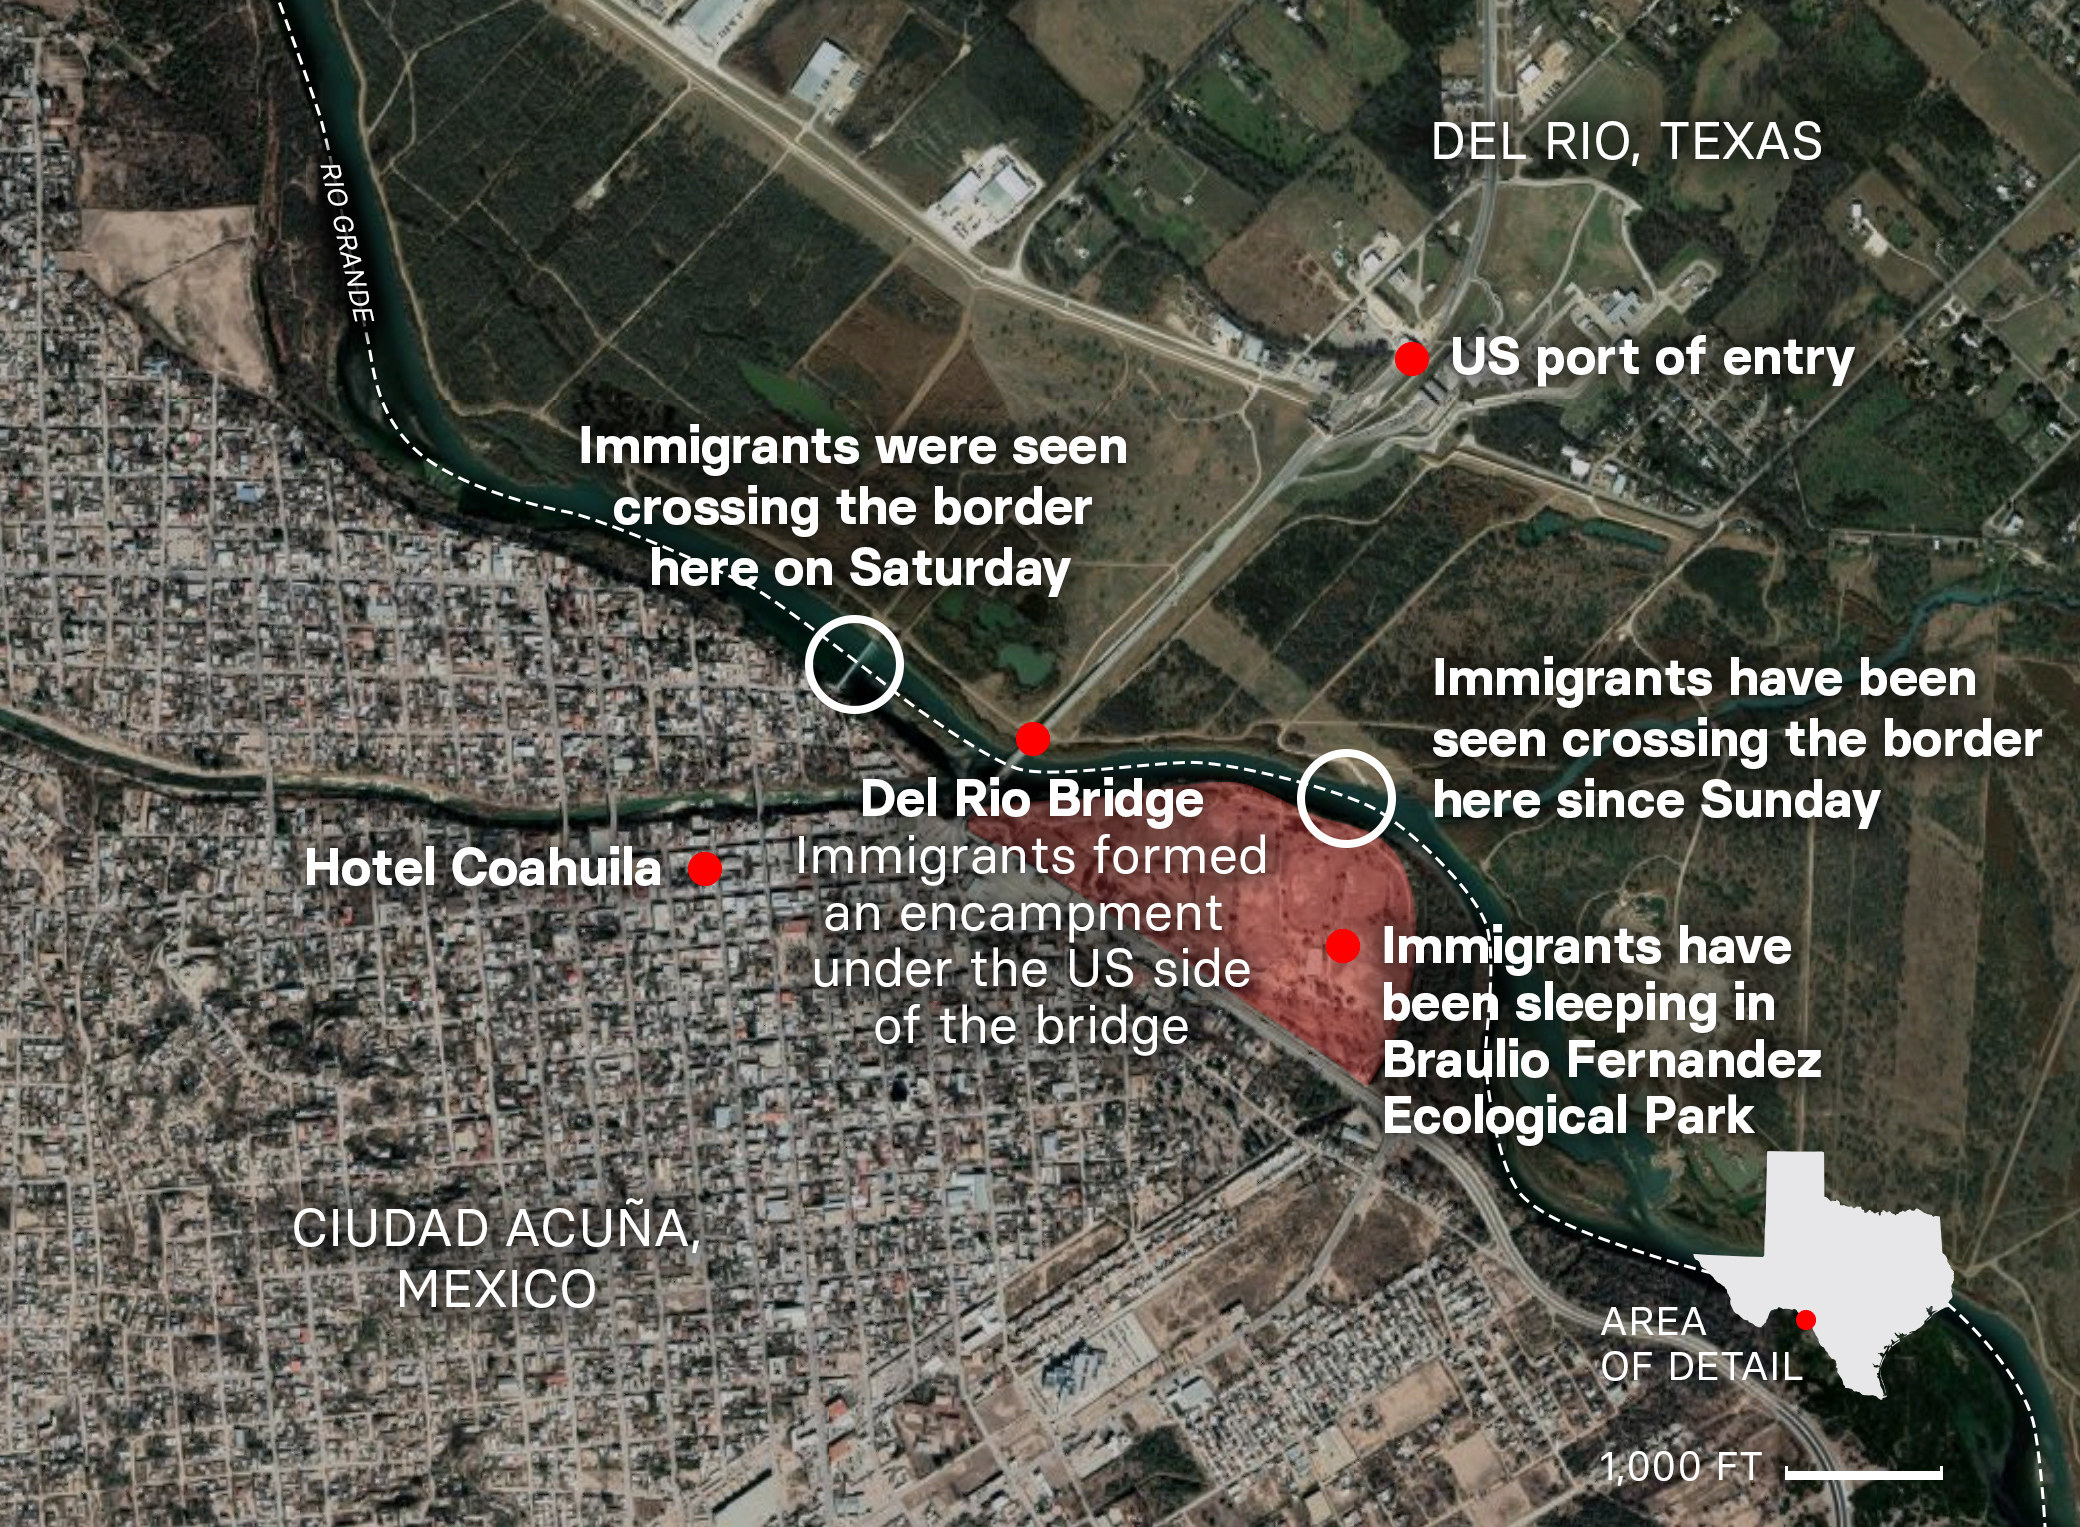 A map of the border between Mexico and the US and relevant locations around Ciudad Acuña, Mexico